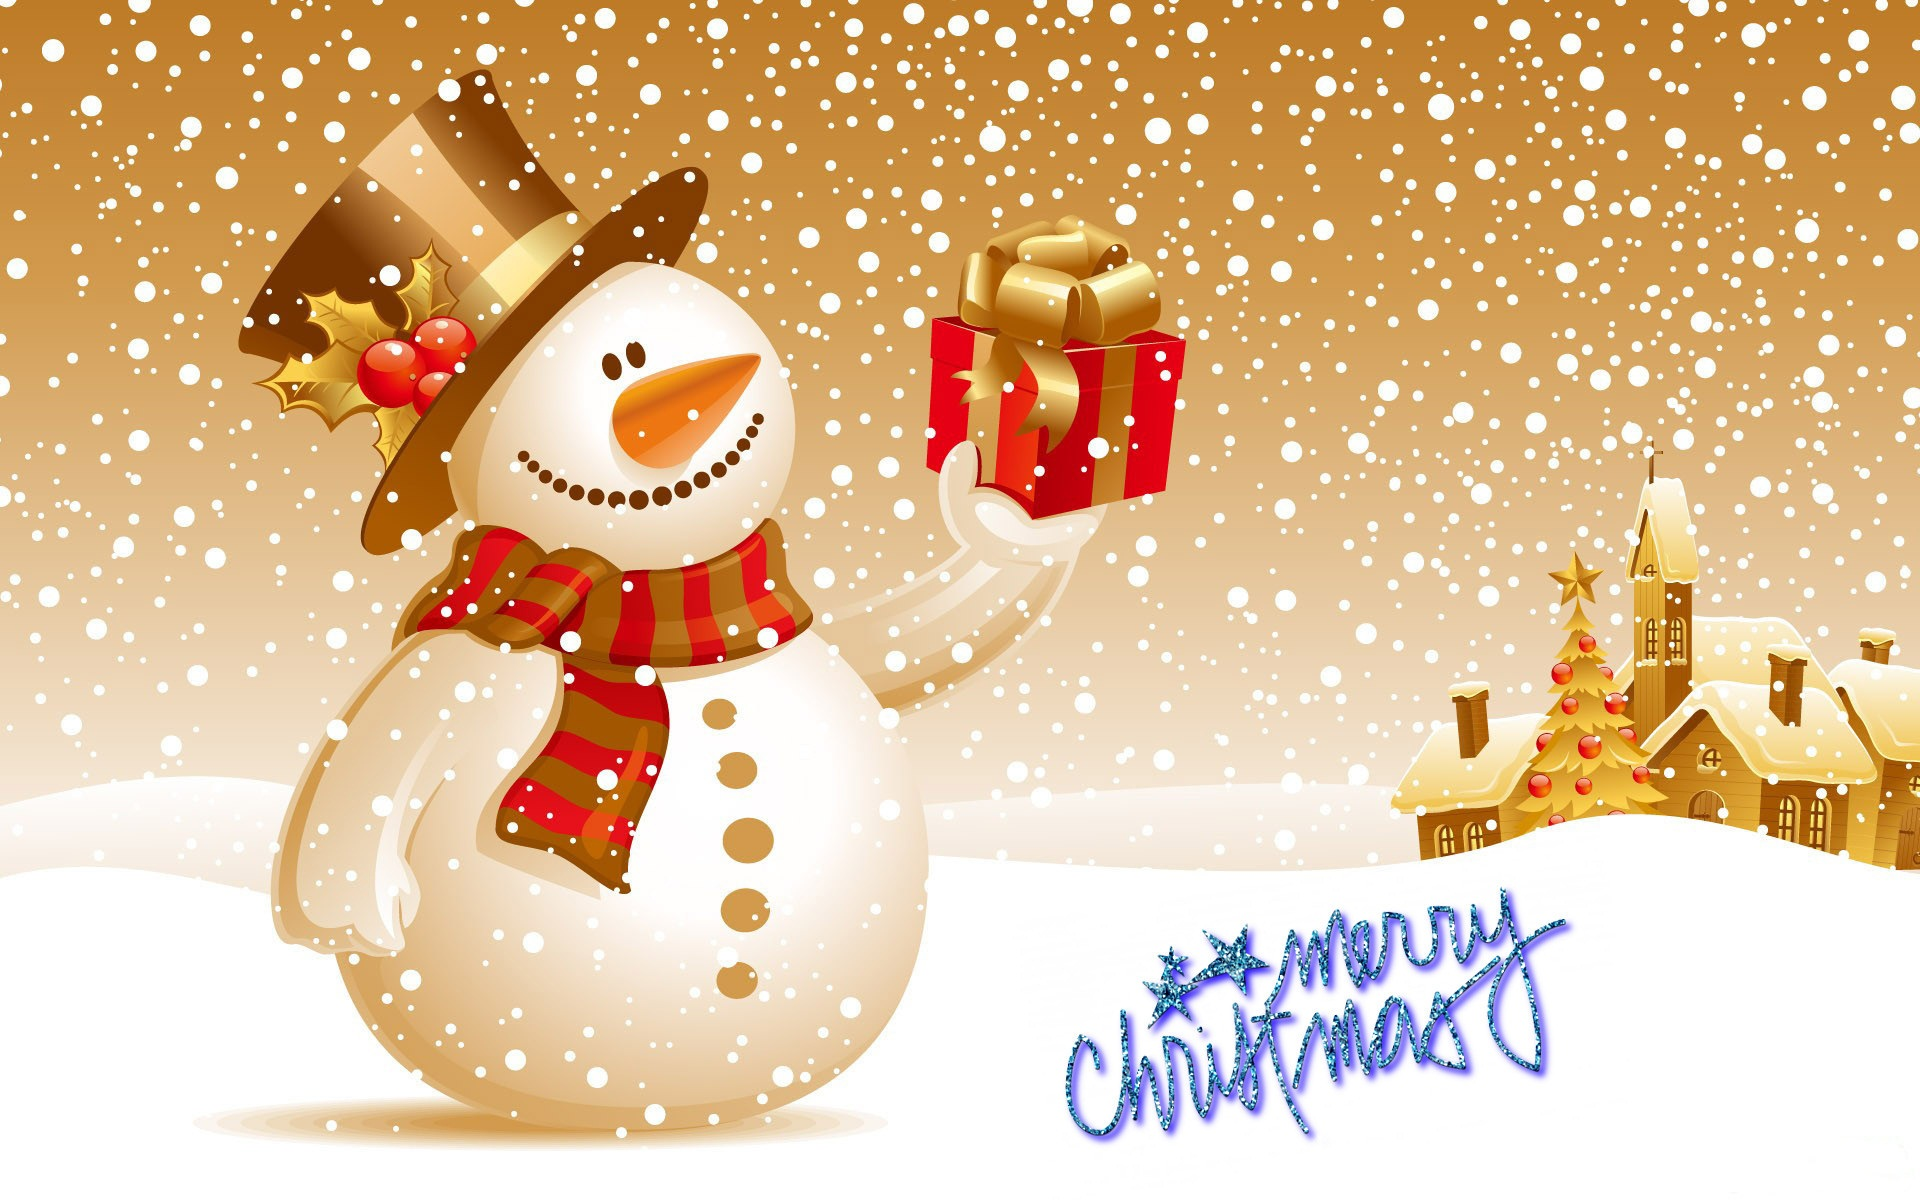 merry christmas wallpaper widescreen new #13549 wallpaper